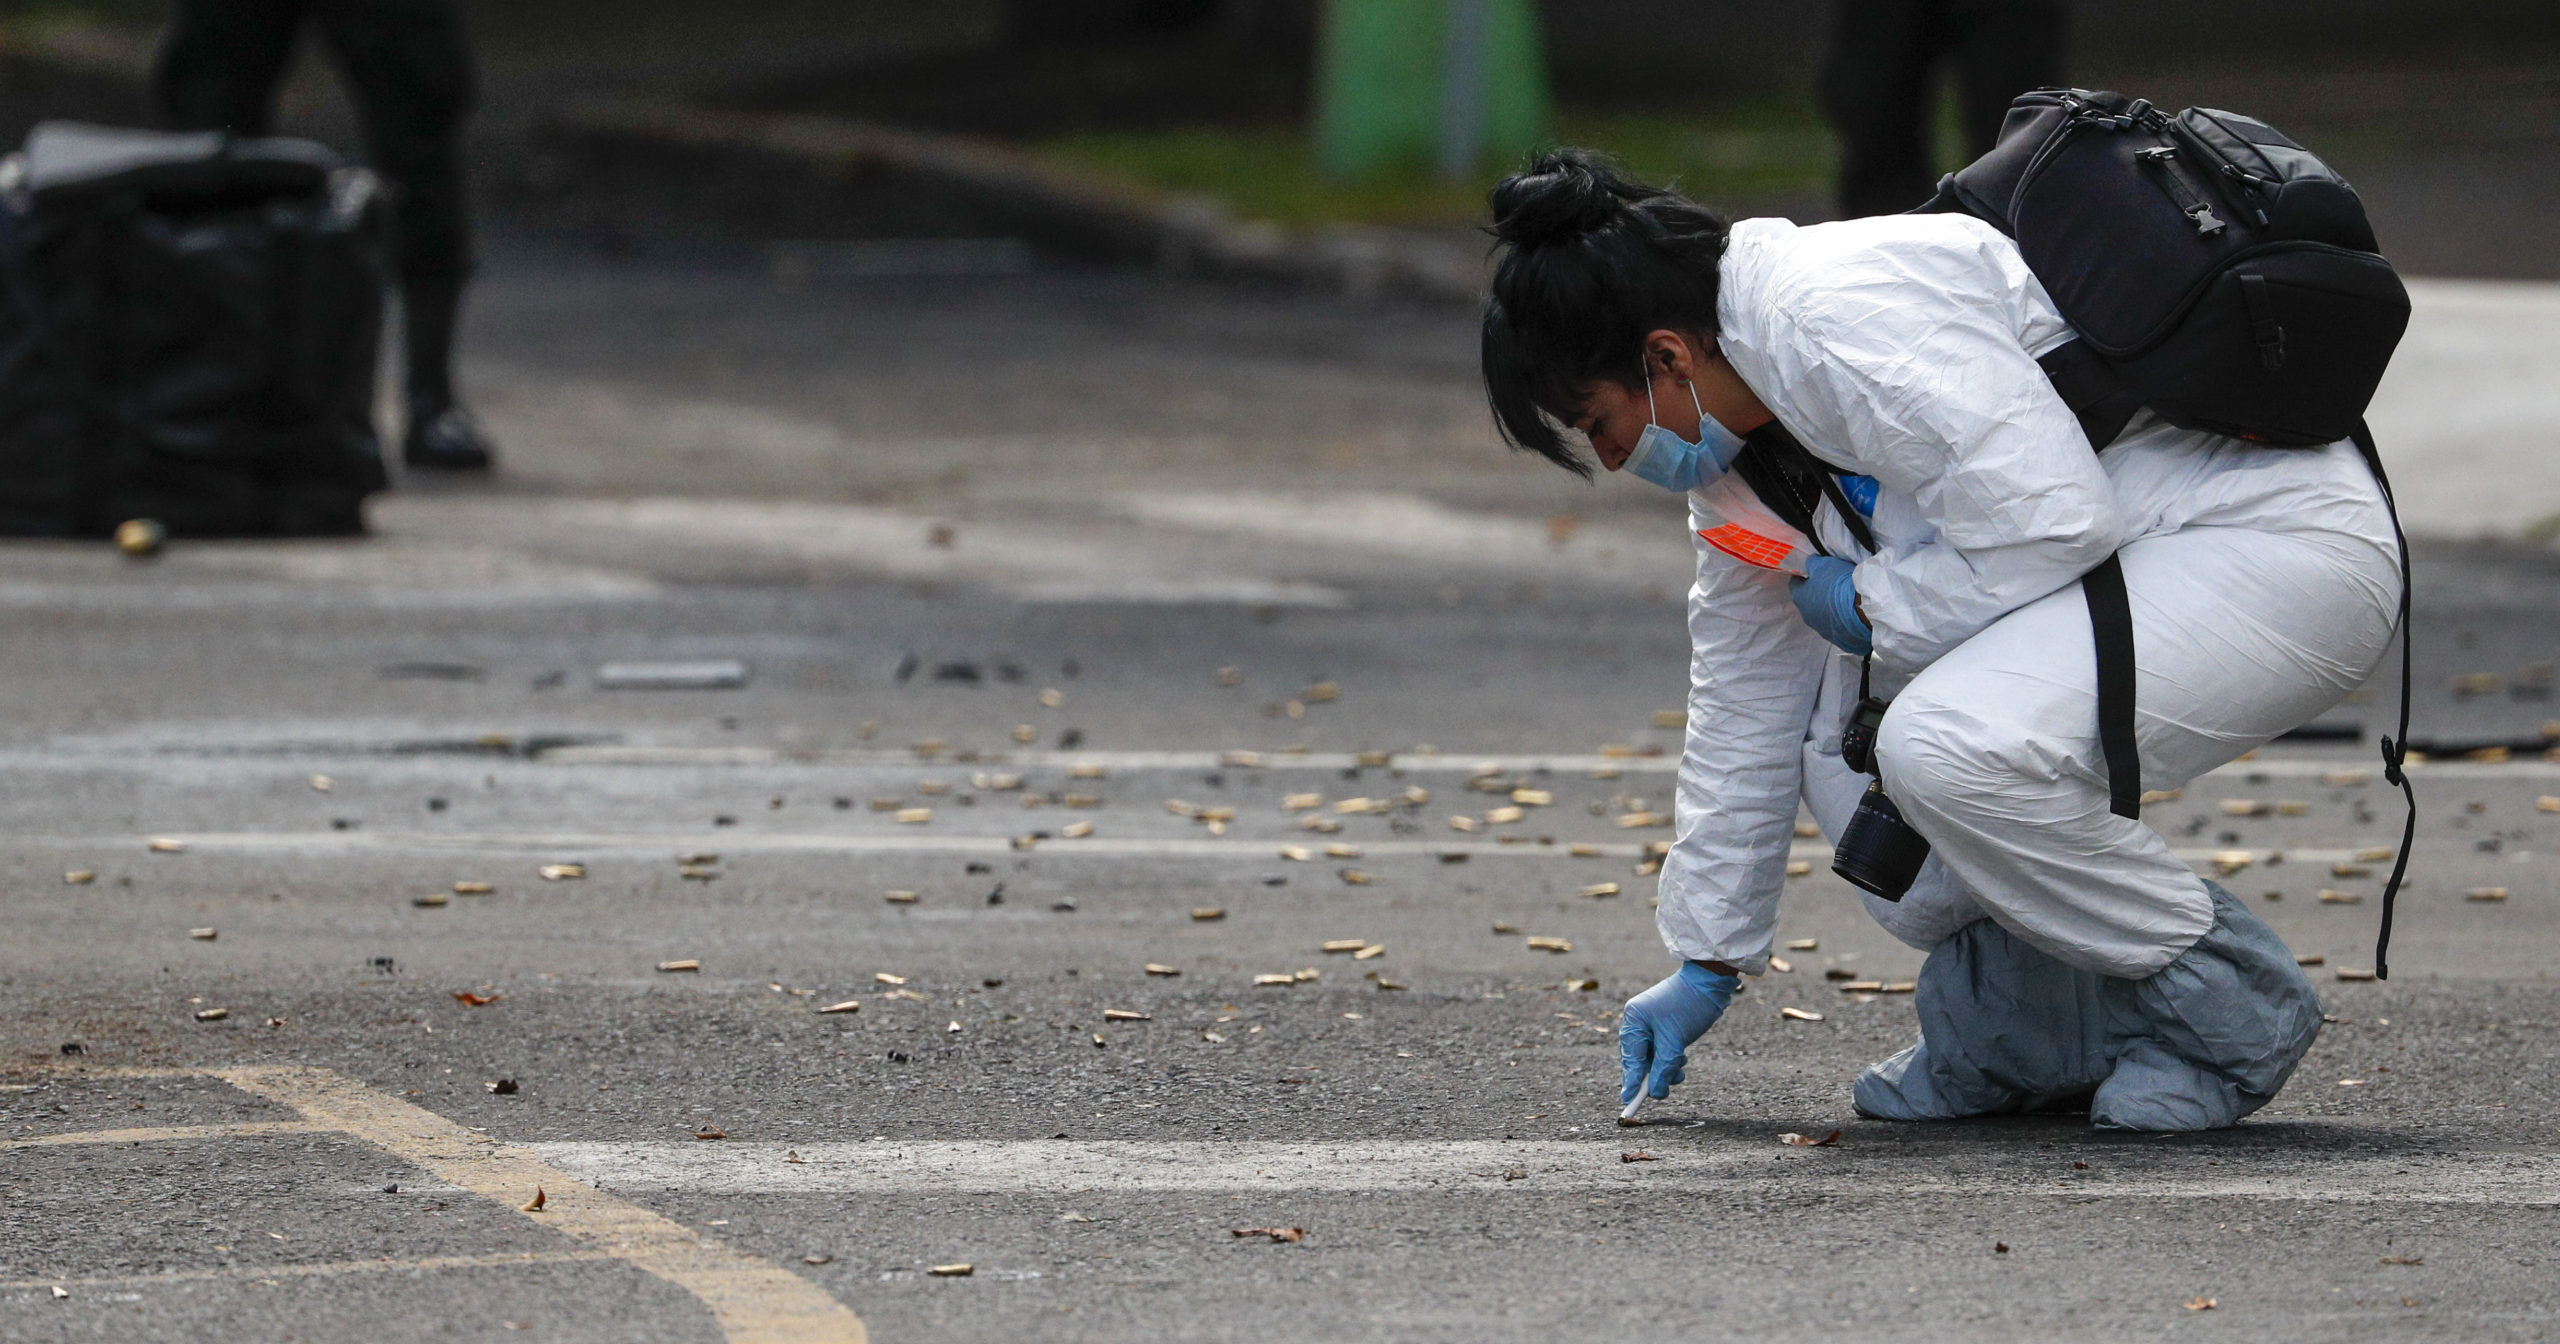 A forensic investigator collects cartridges at the scene where Mexico City's police chief was attacked by gunmen on June 26, 2020. Heavily armed gunmen attacked and wounded Omar García Harfuch in an operation that left three dead.